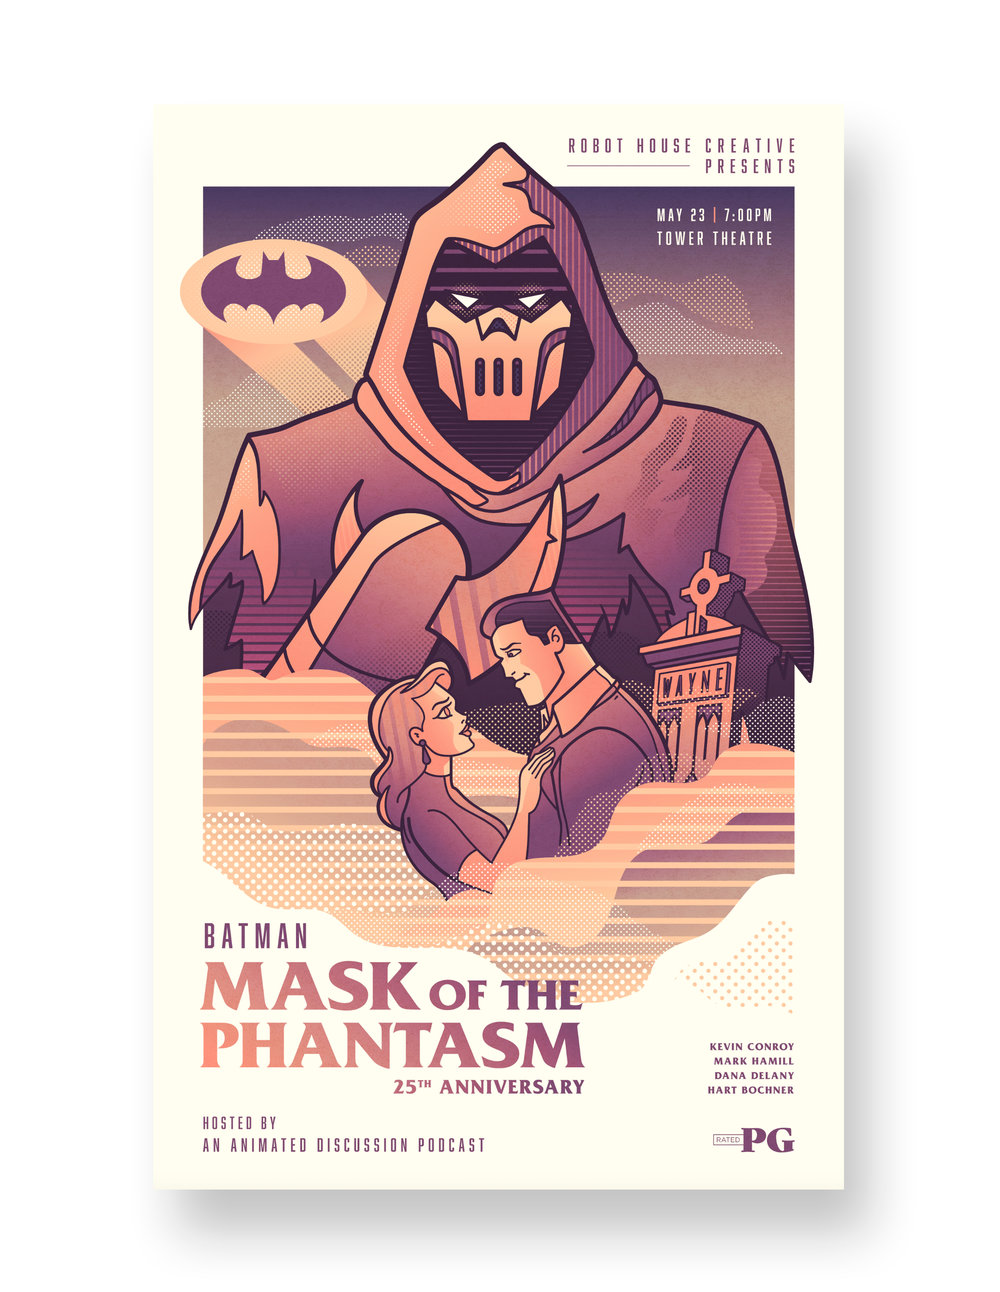 BATMAN MASK OF THE PHANTASM TOWER THEATRE VARIANT